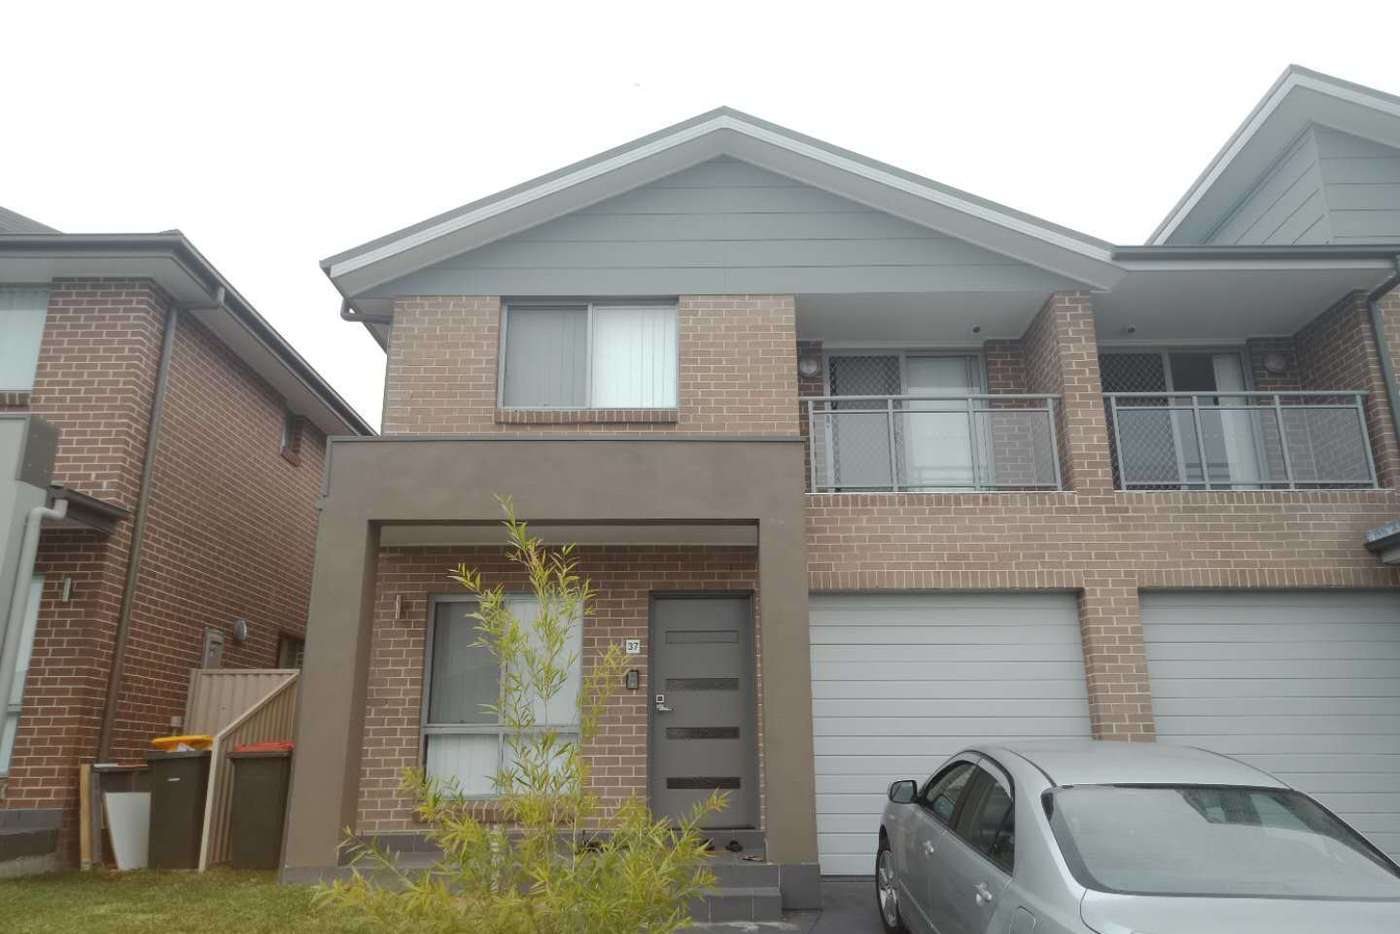 Main view of Homely townhouse listing, 37 Waring Crescent, Plumpton NSW 2761